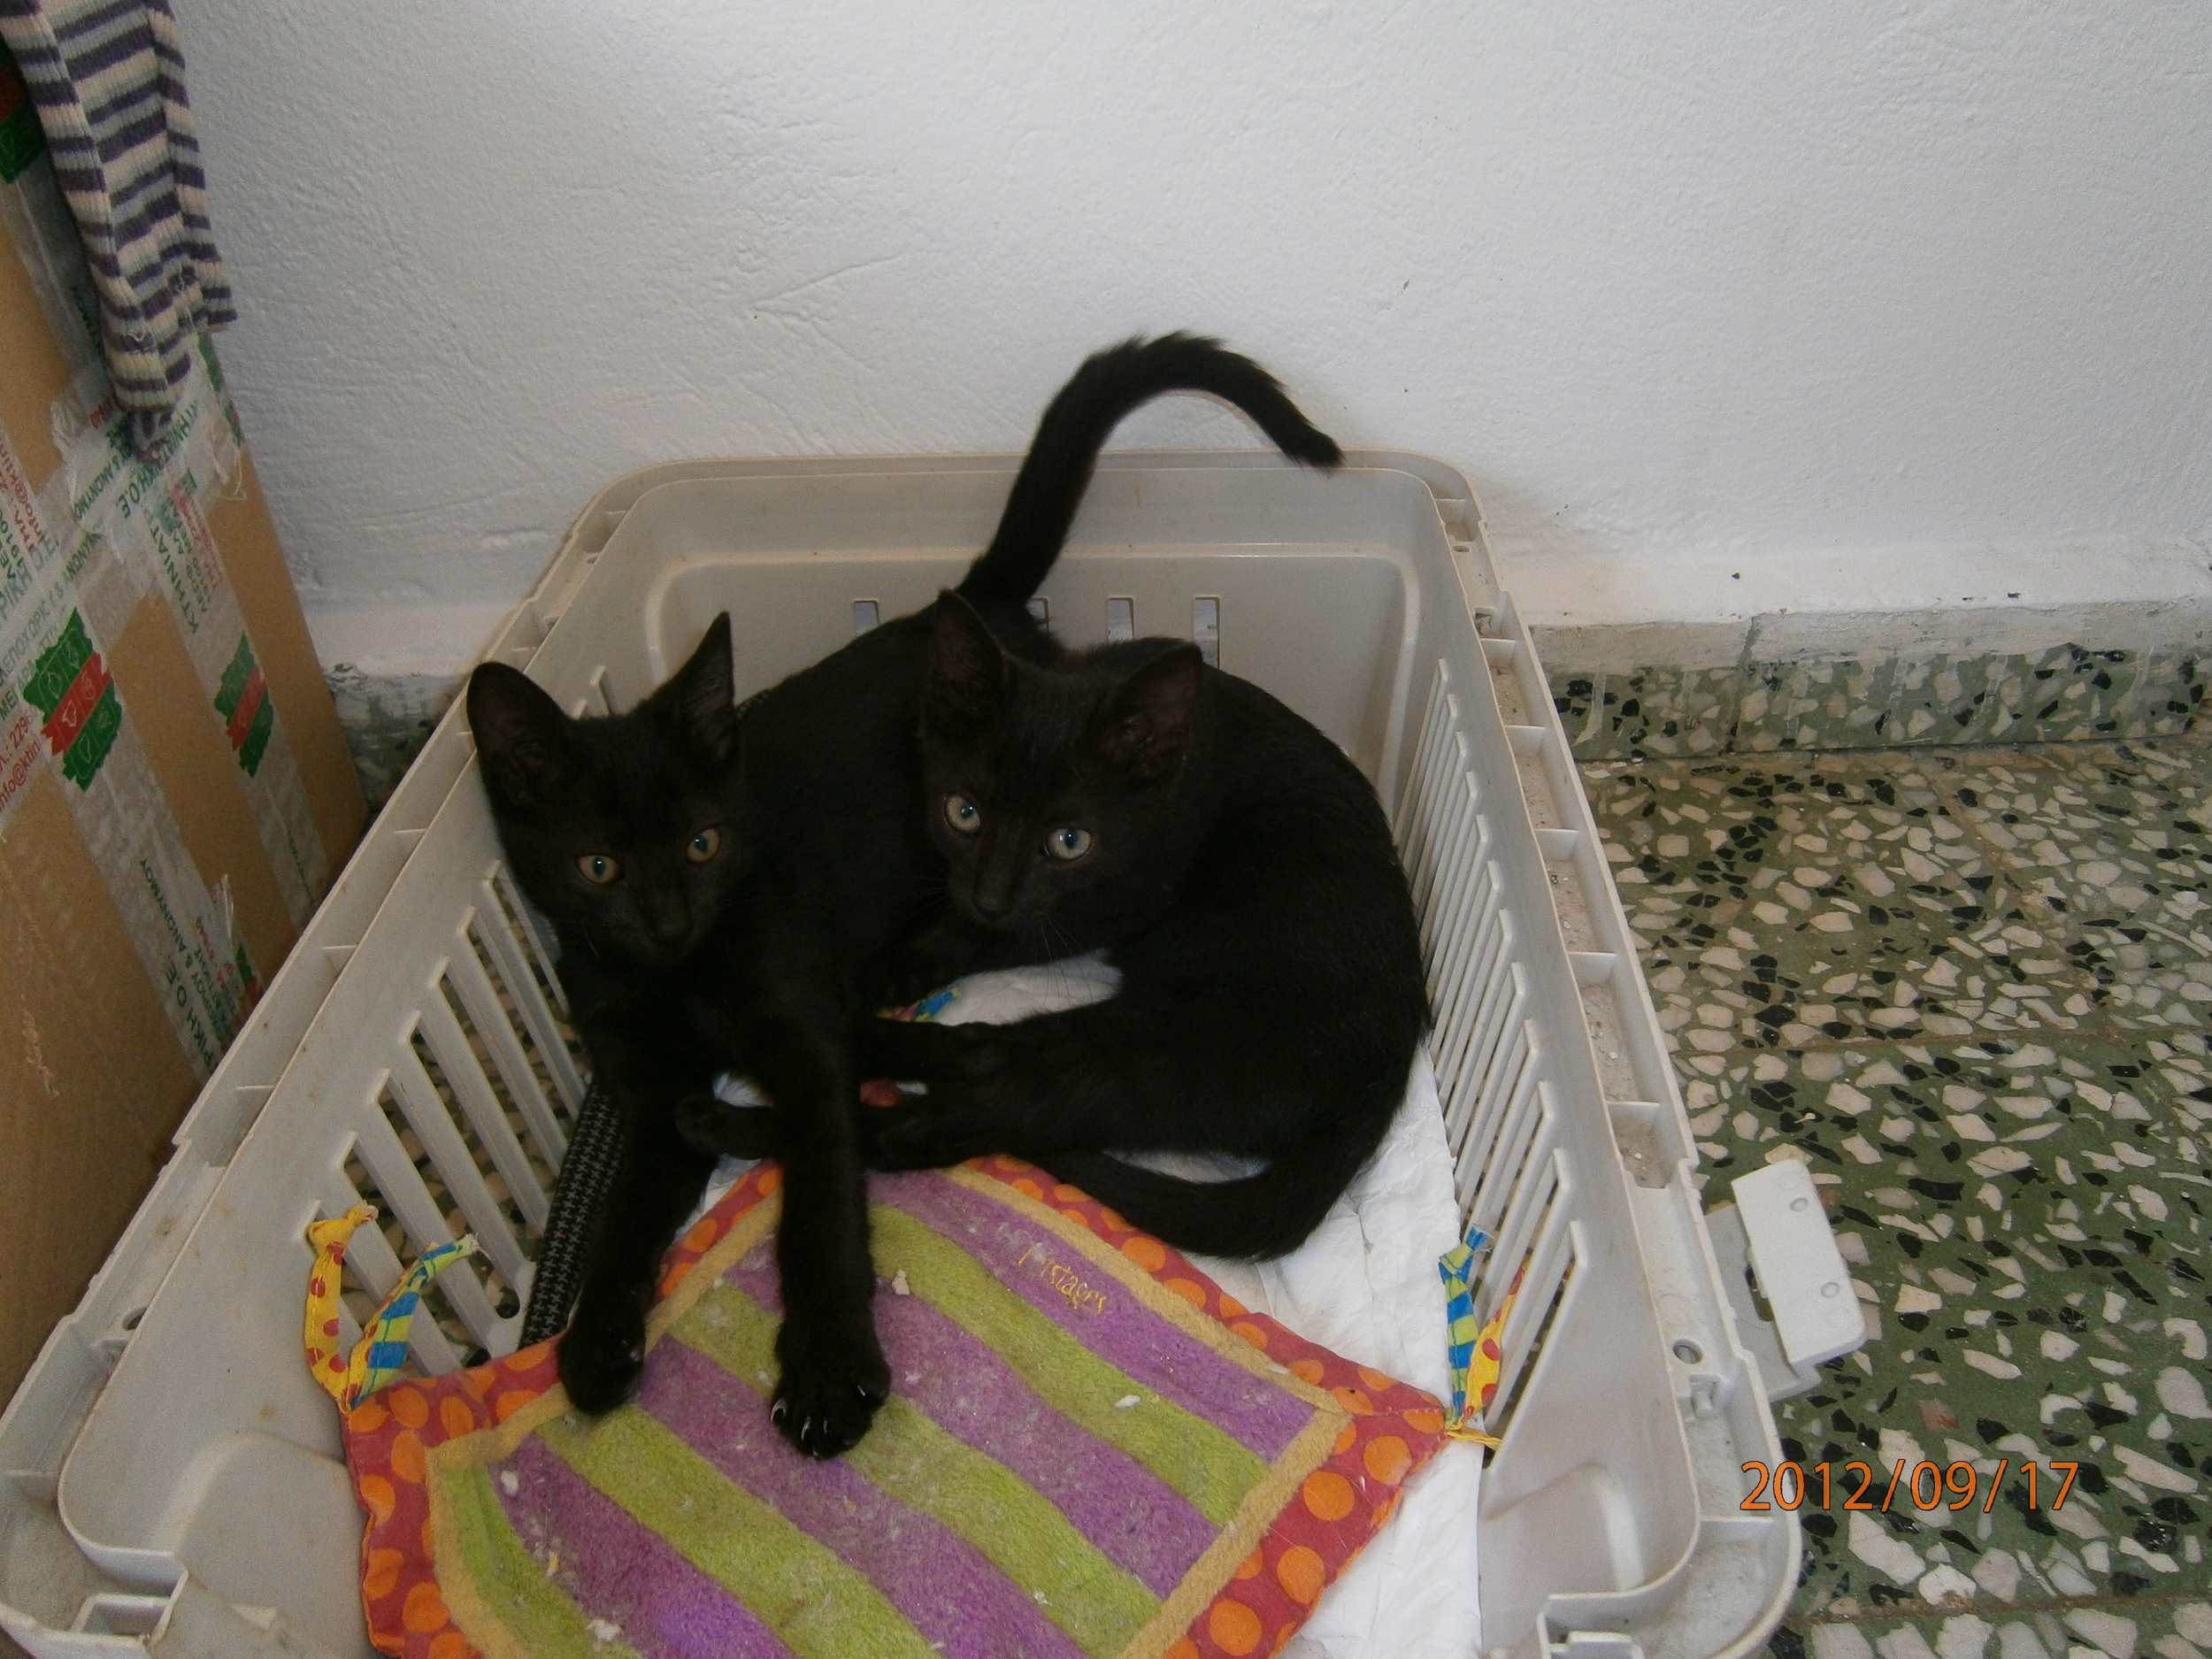 With his sister Daisy as kittens